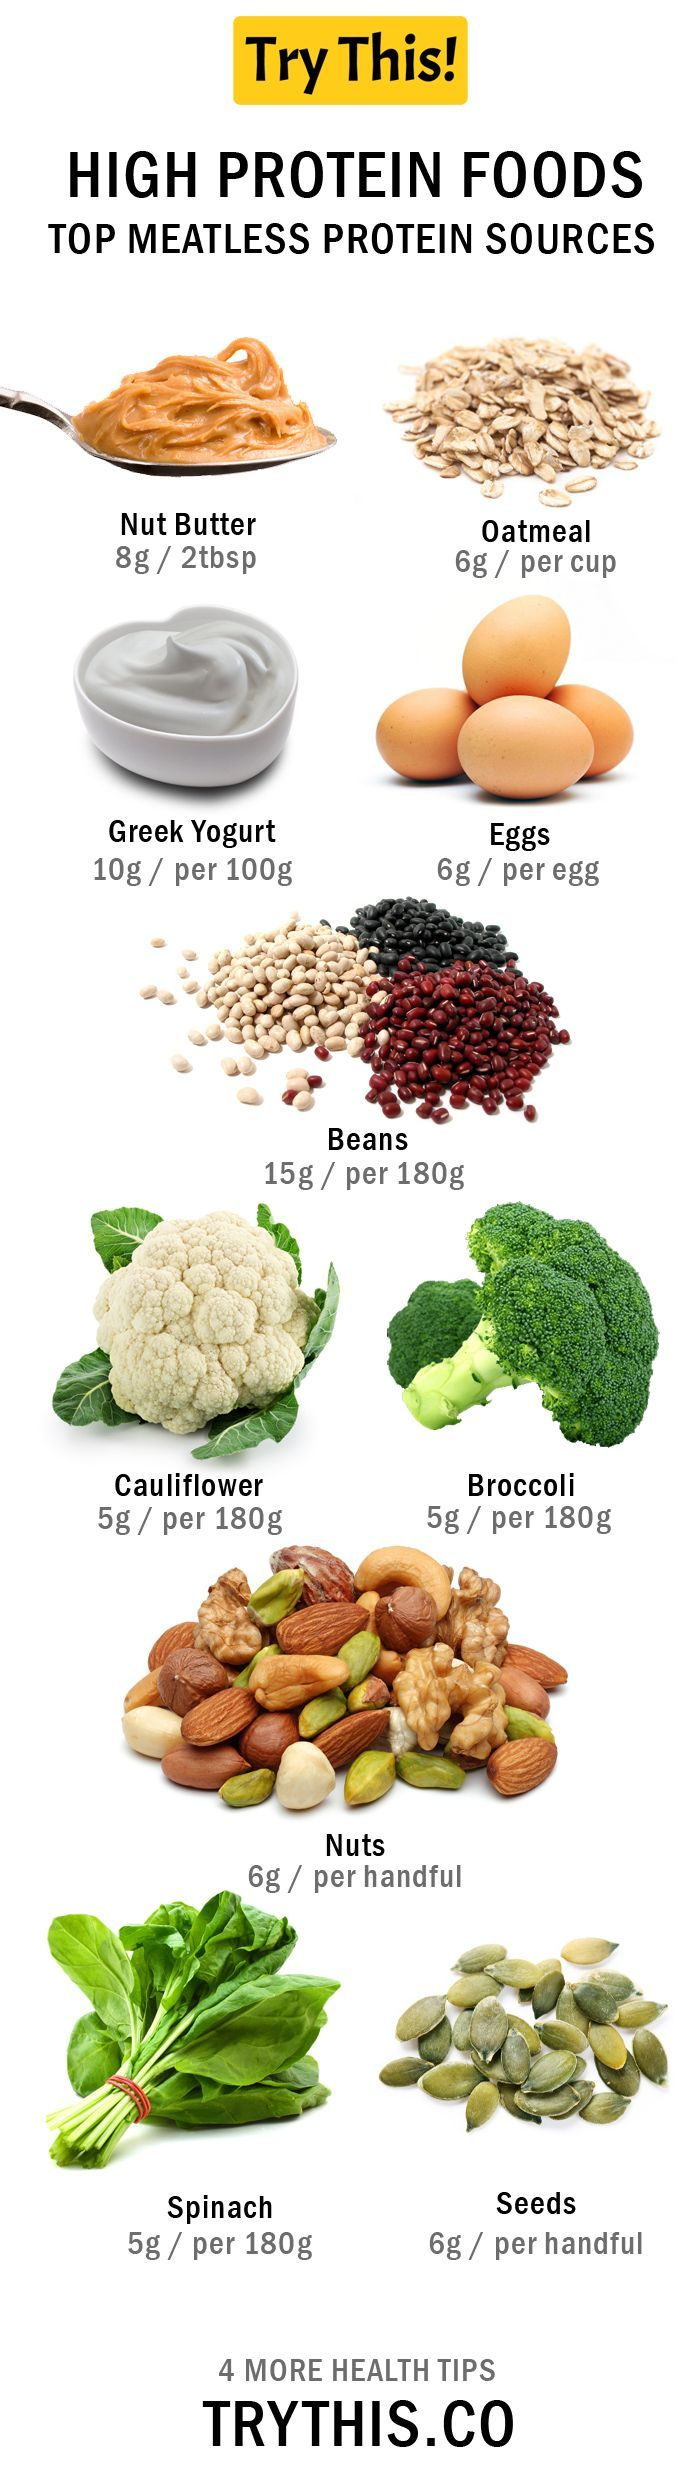 High Protein Foods Top Meatless Protein Foods High